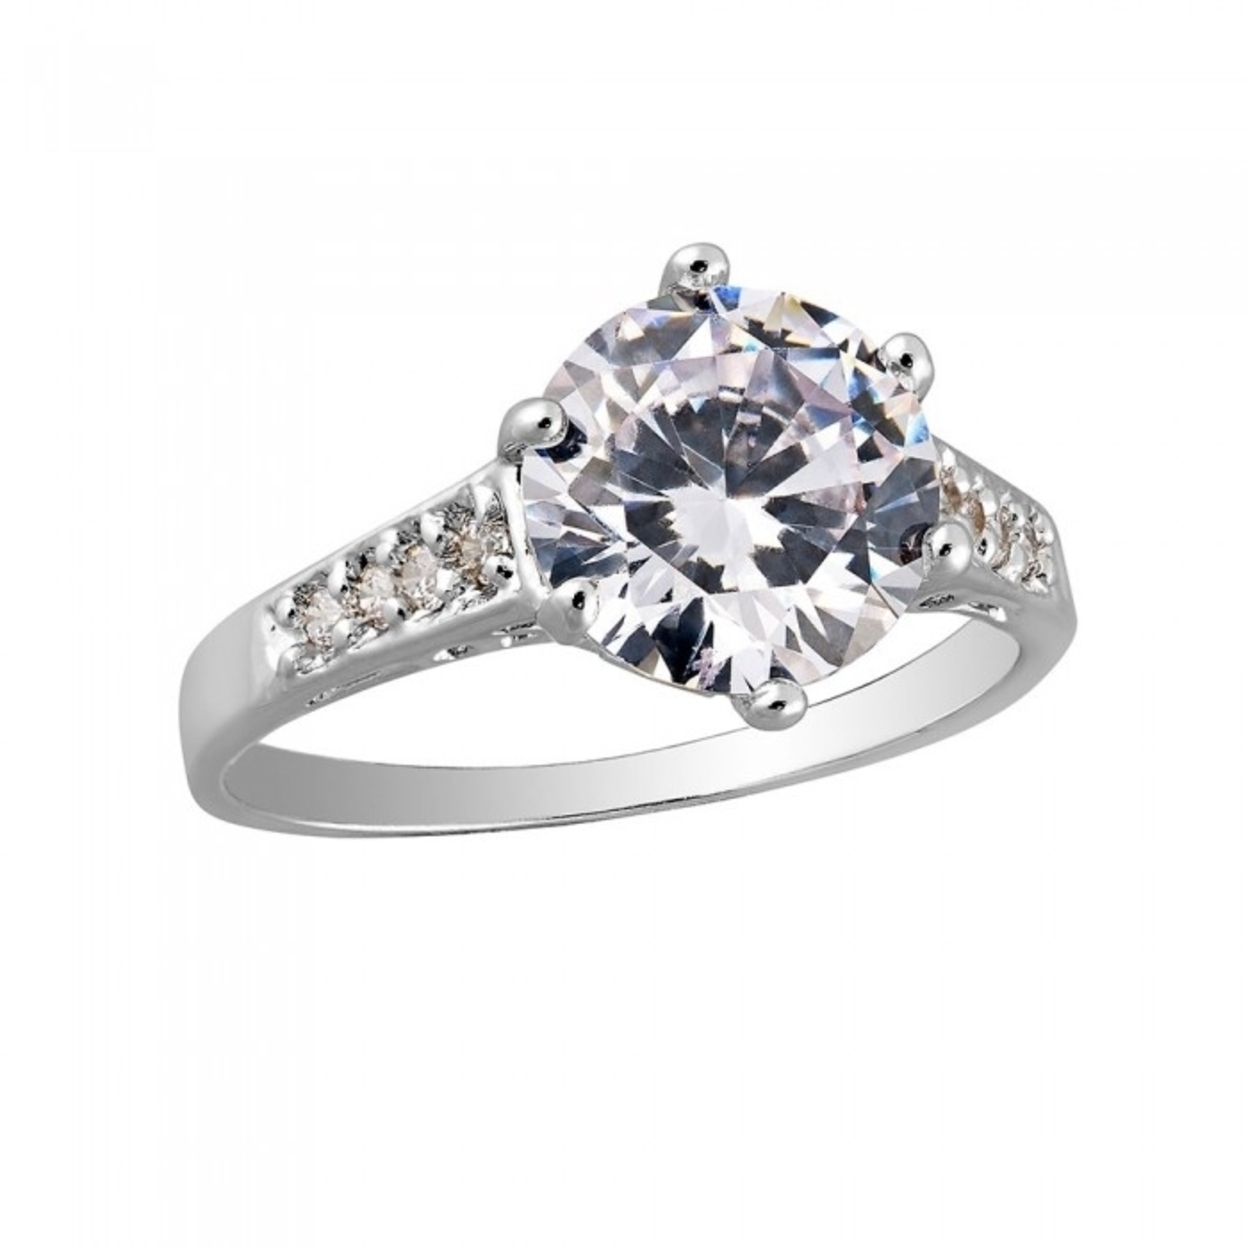 2.5 Carat Brilliant Cut Clear Sapphire White Gold Filled Ring Size K 16mm